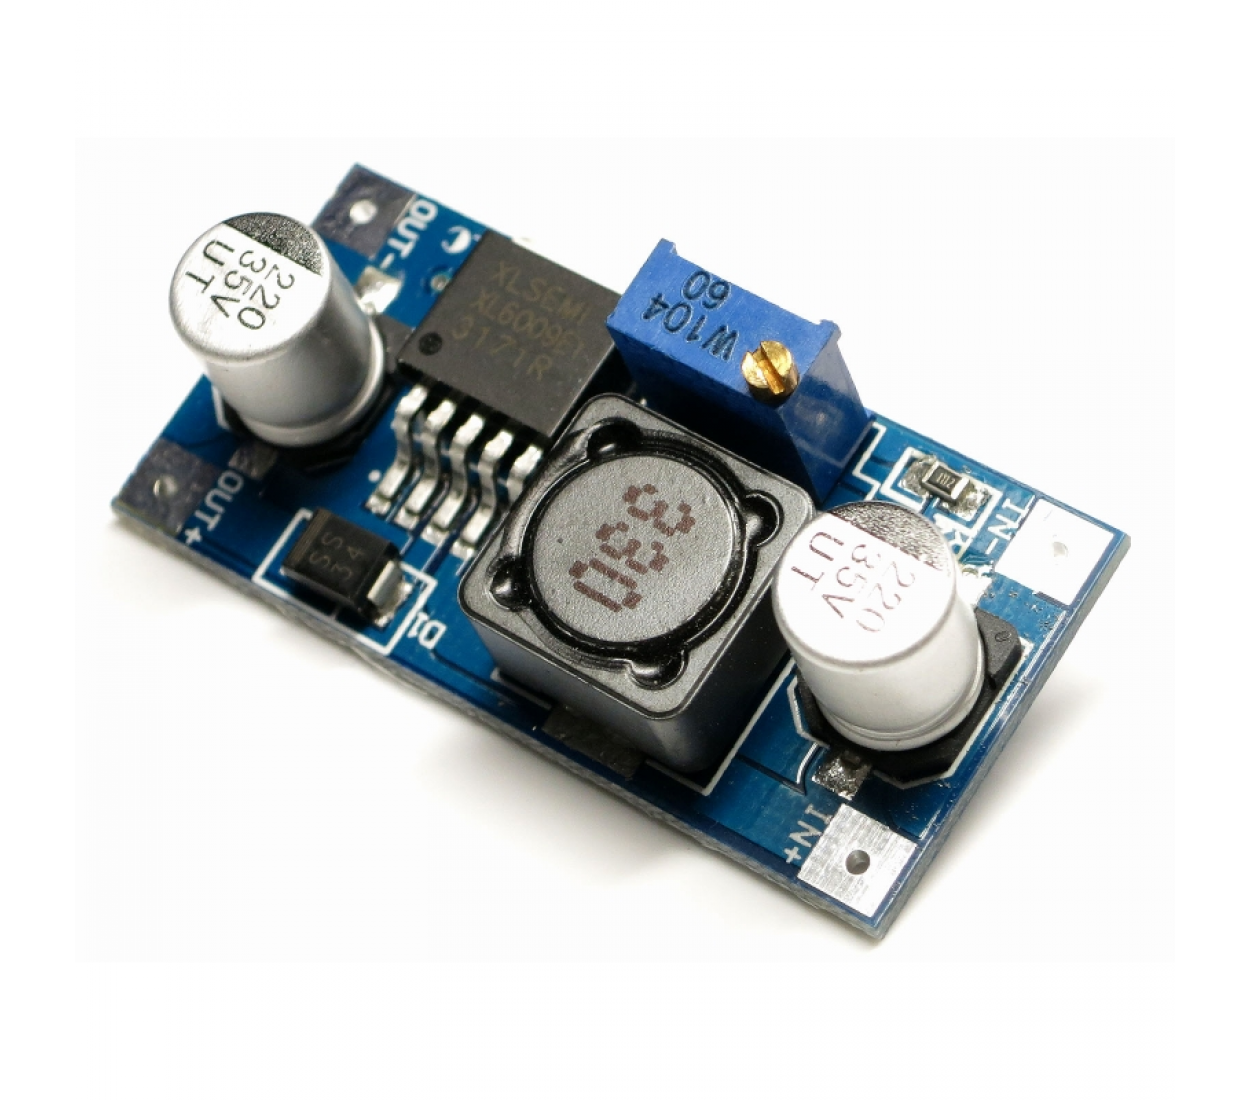 Adjustable 0 100v 50   Smps Circuit besides Circuito De Dimmer Usando Transistor Mosfet together with 12v 120v Tension En Circuit Inverseur as well Solar Induction Heater Circuit also Watch. on igbt inverter 12 volt